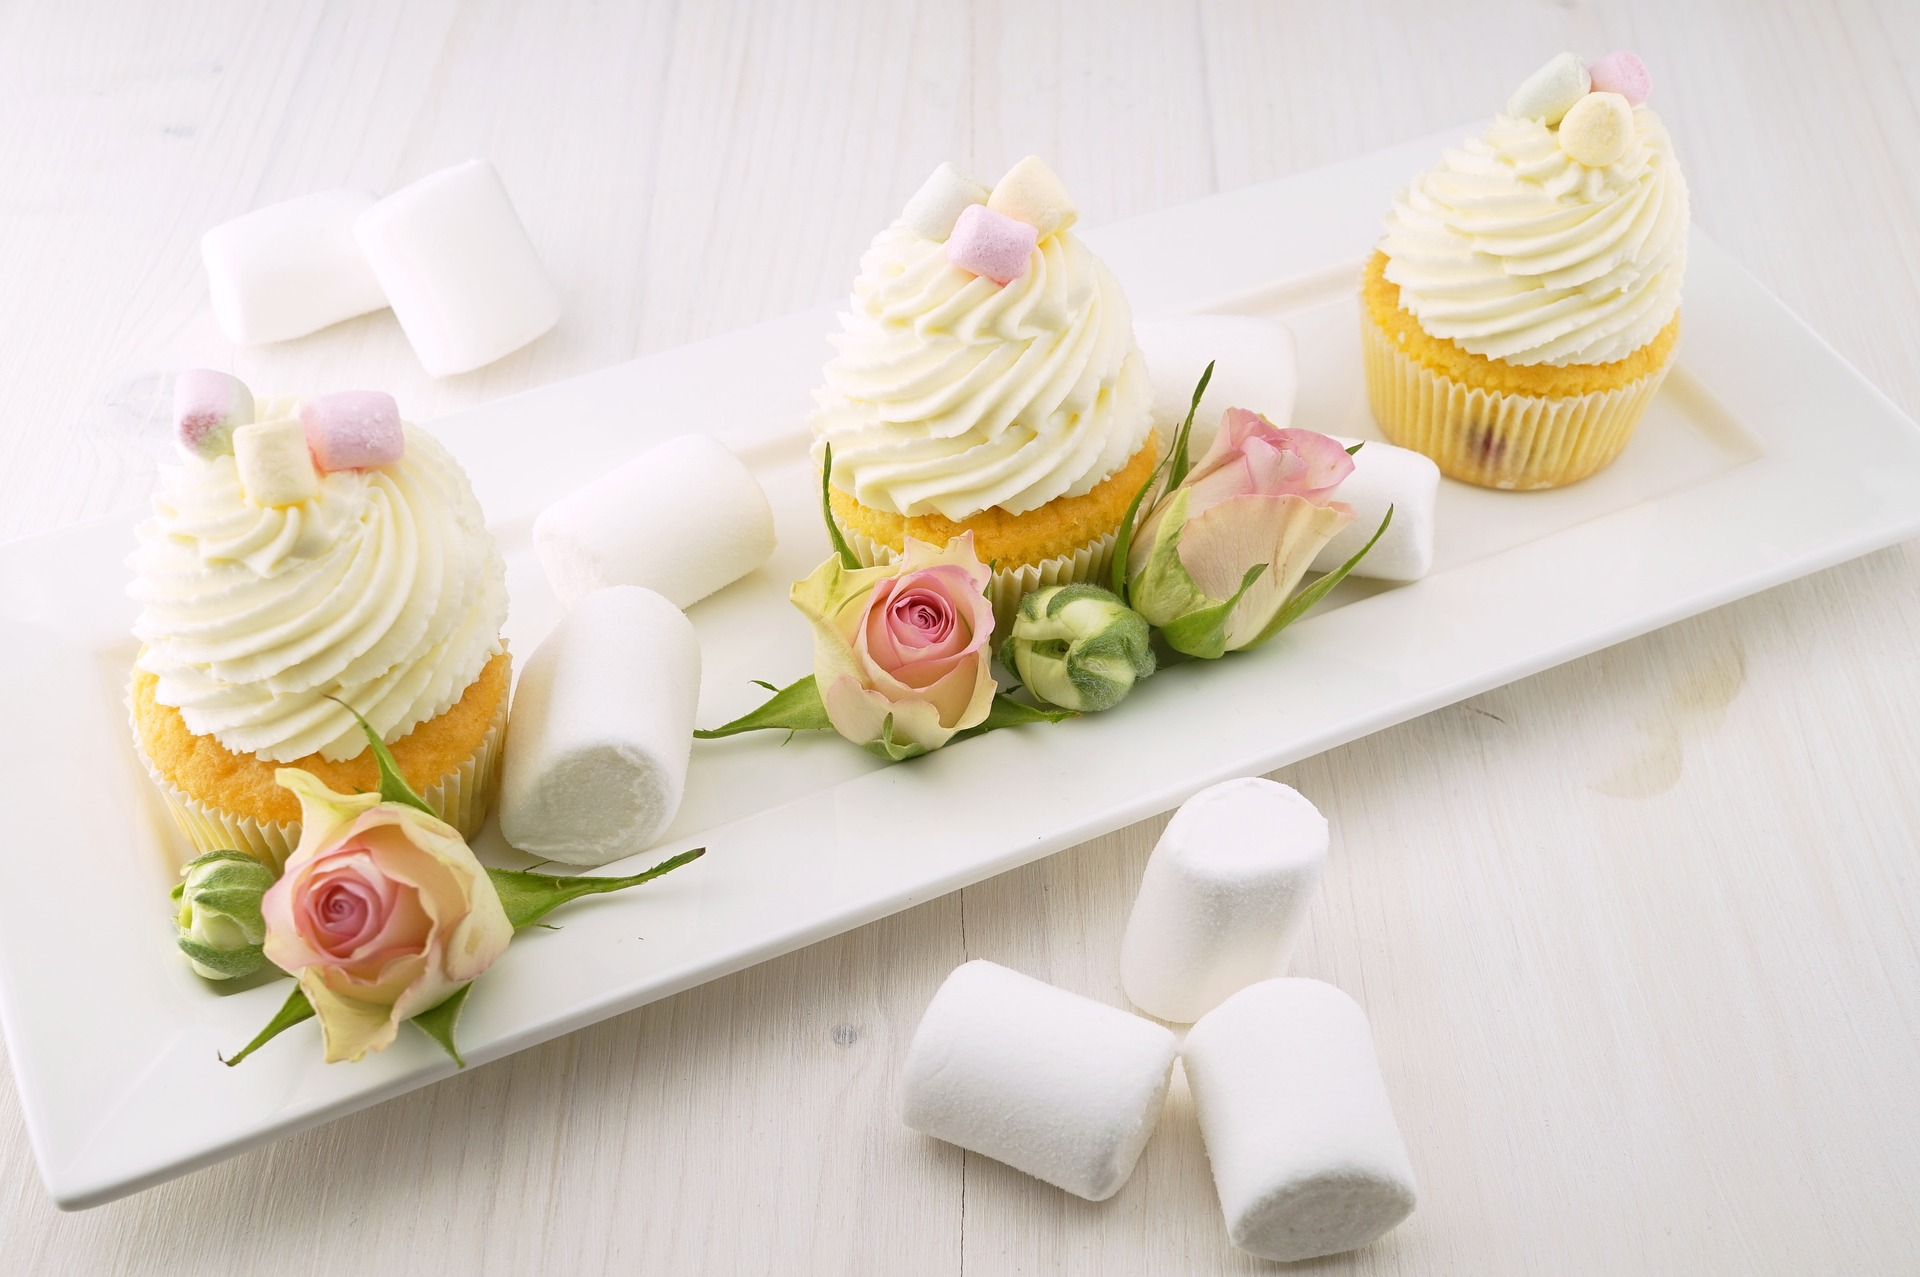 Image of sweets and flowers, an appropriate gift in Japan